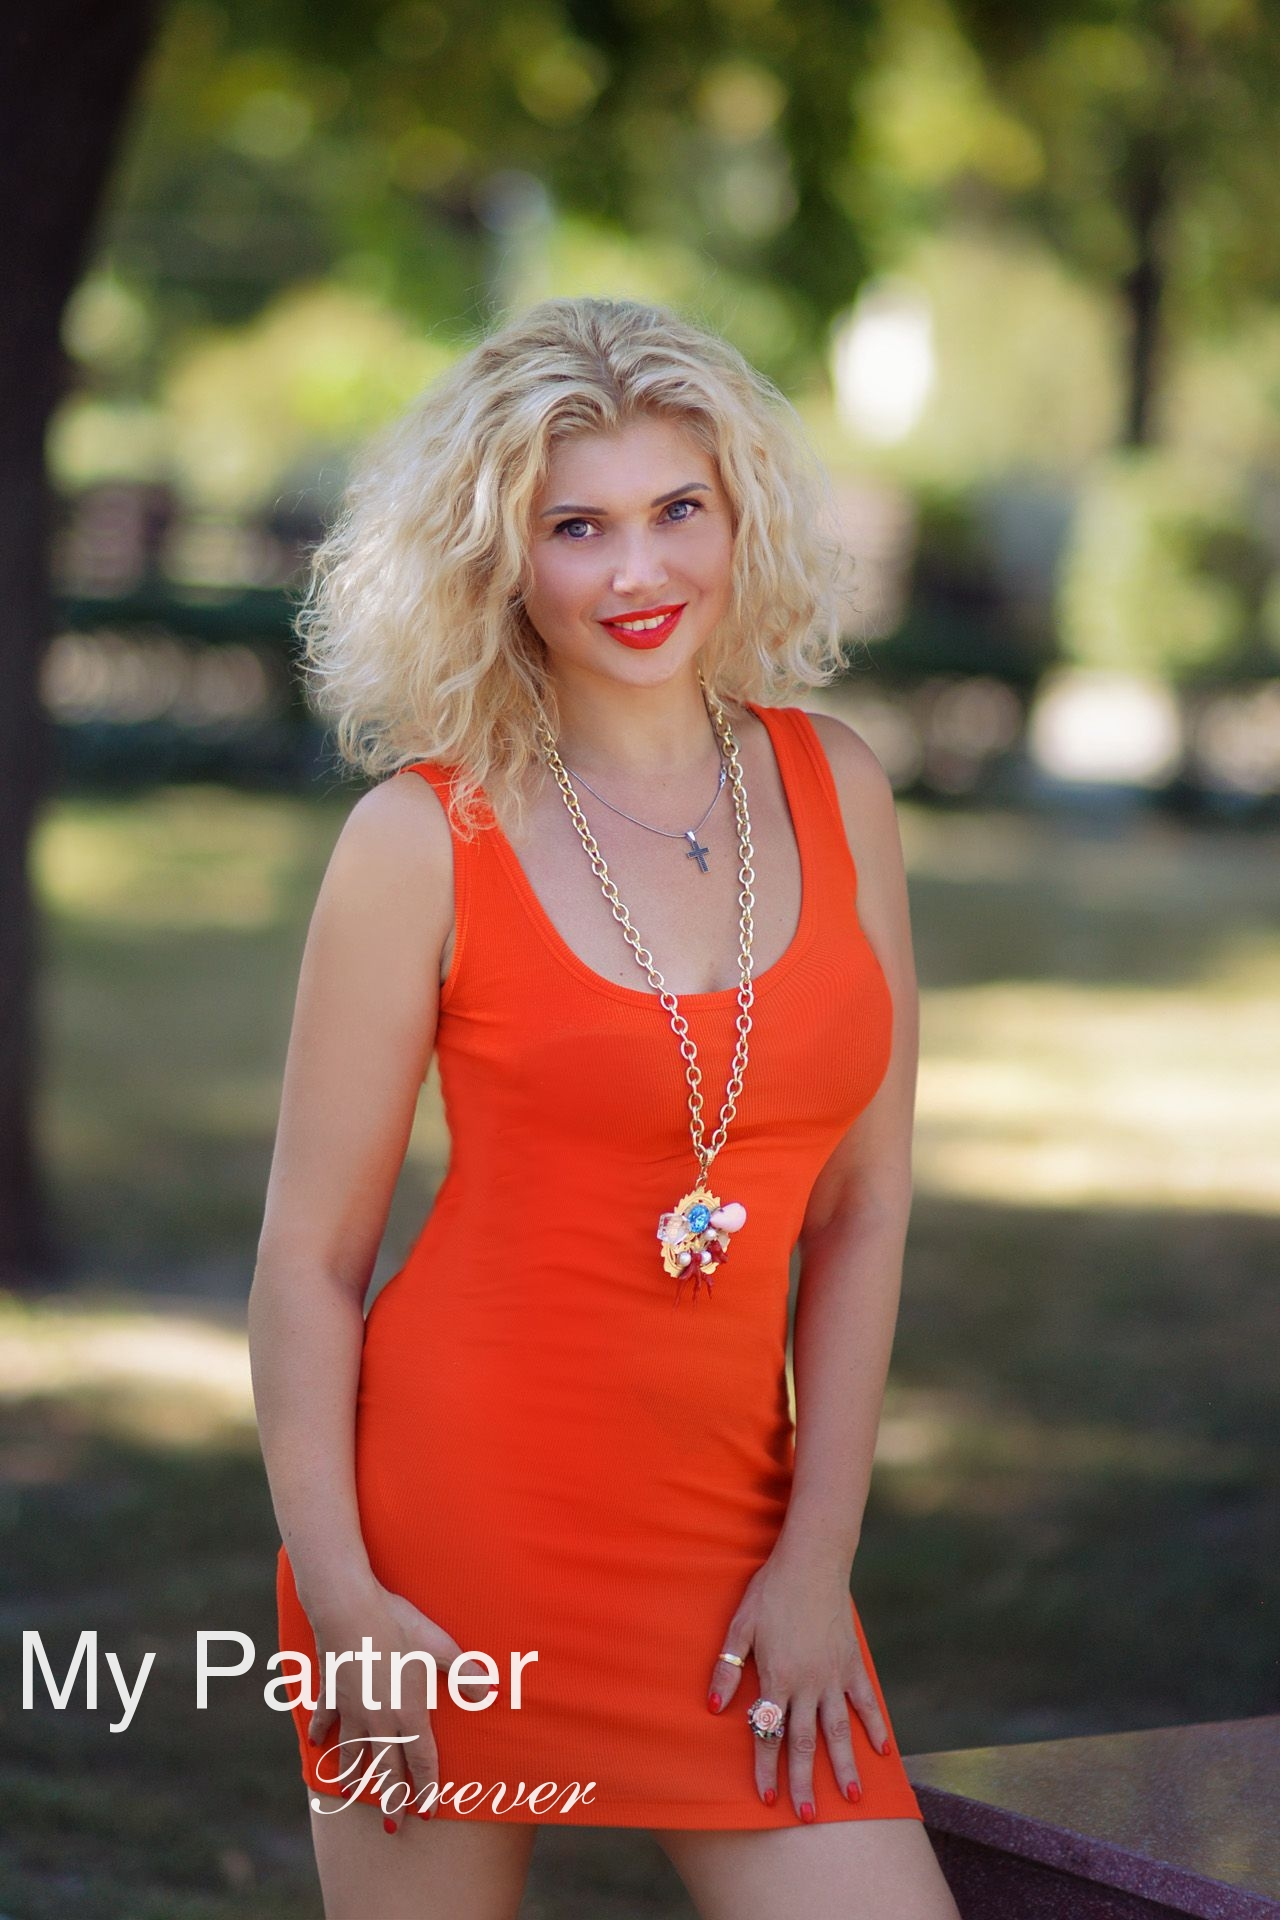 Gorgeous Woman from Ukraine - Alina from Kharkov, Ukraine